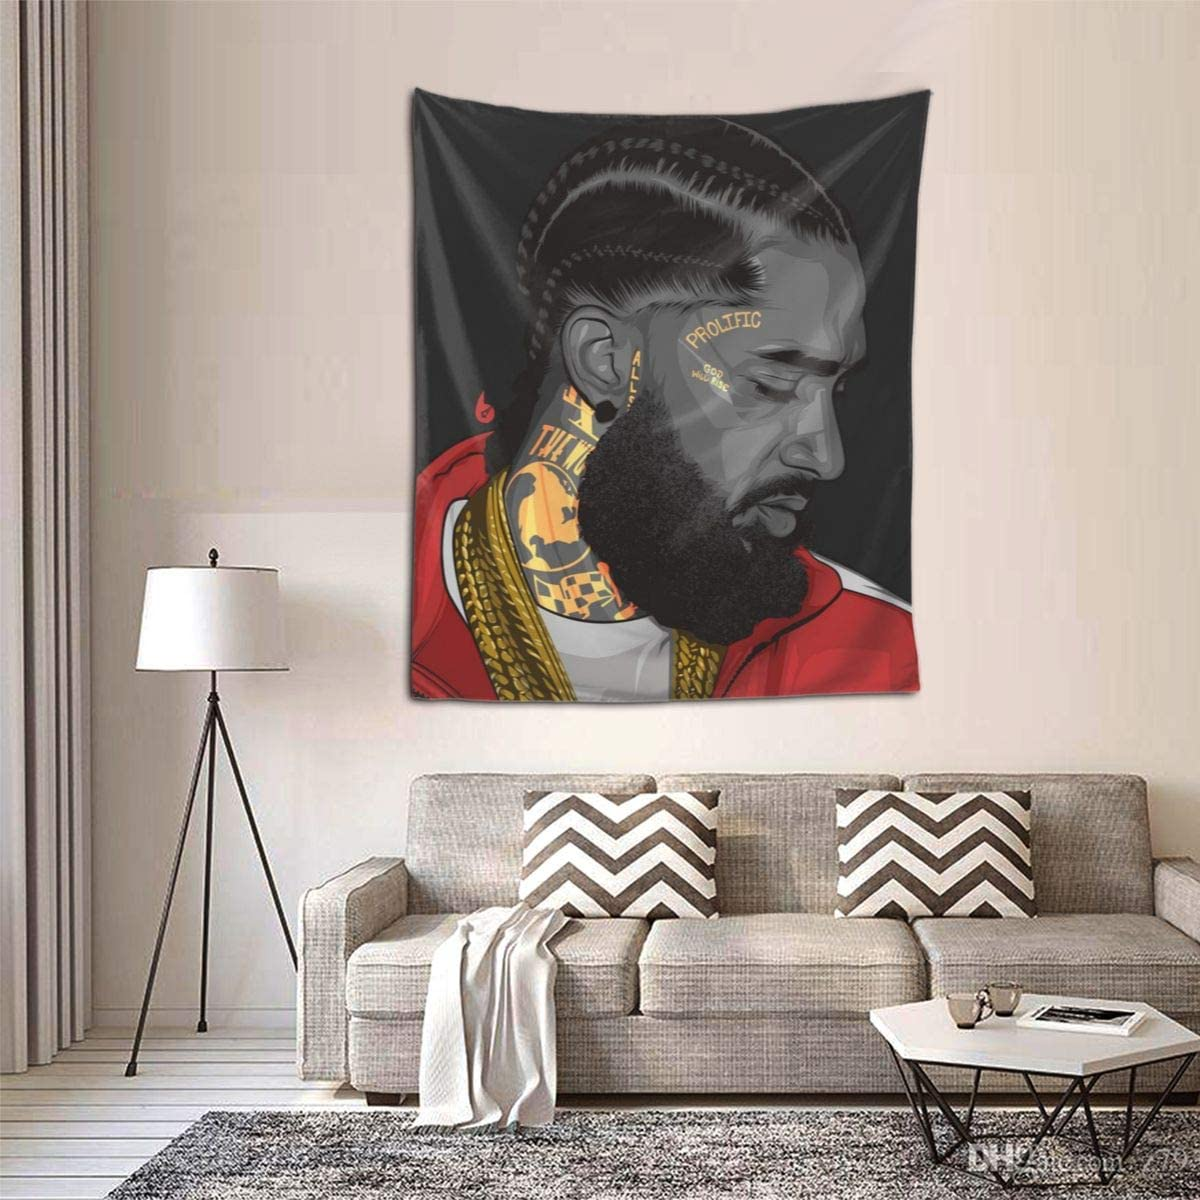 Nipsey-Hussle Tapestry Wall Hanging Tapestries Modern Wall Blanket Wall Art For Living Room Bedroom Home Decor,60X51 Inches